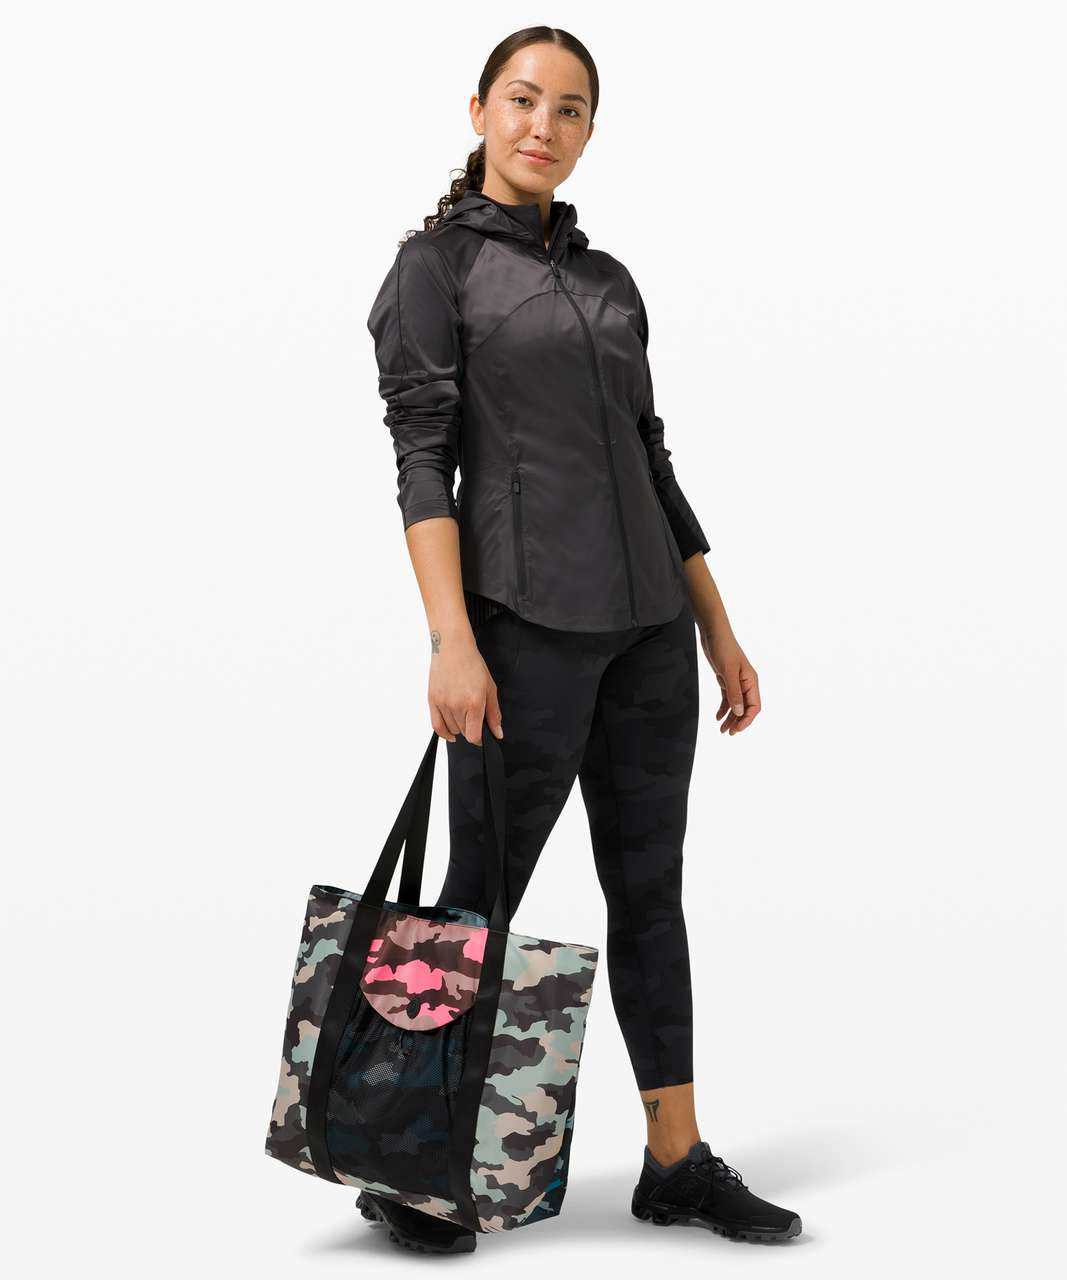 Lululemon Take It On Tote *24L - Heritage 365 Camo Guava Pink Multi / Heritage 365 Camo Cafe Au Lait Multi / Heritage 365 Camo Hawaiian Blue Multi